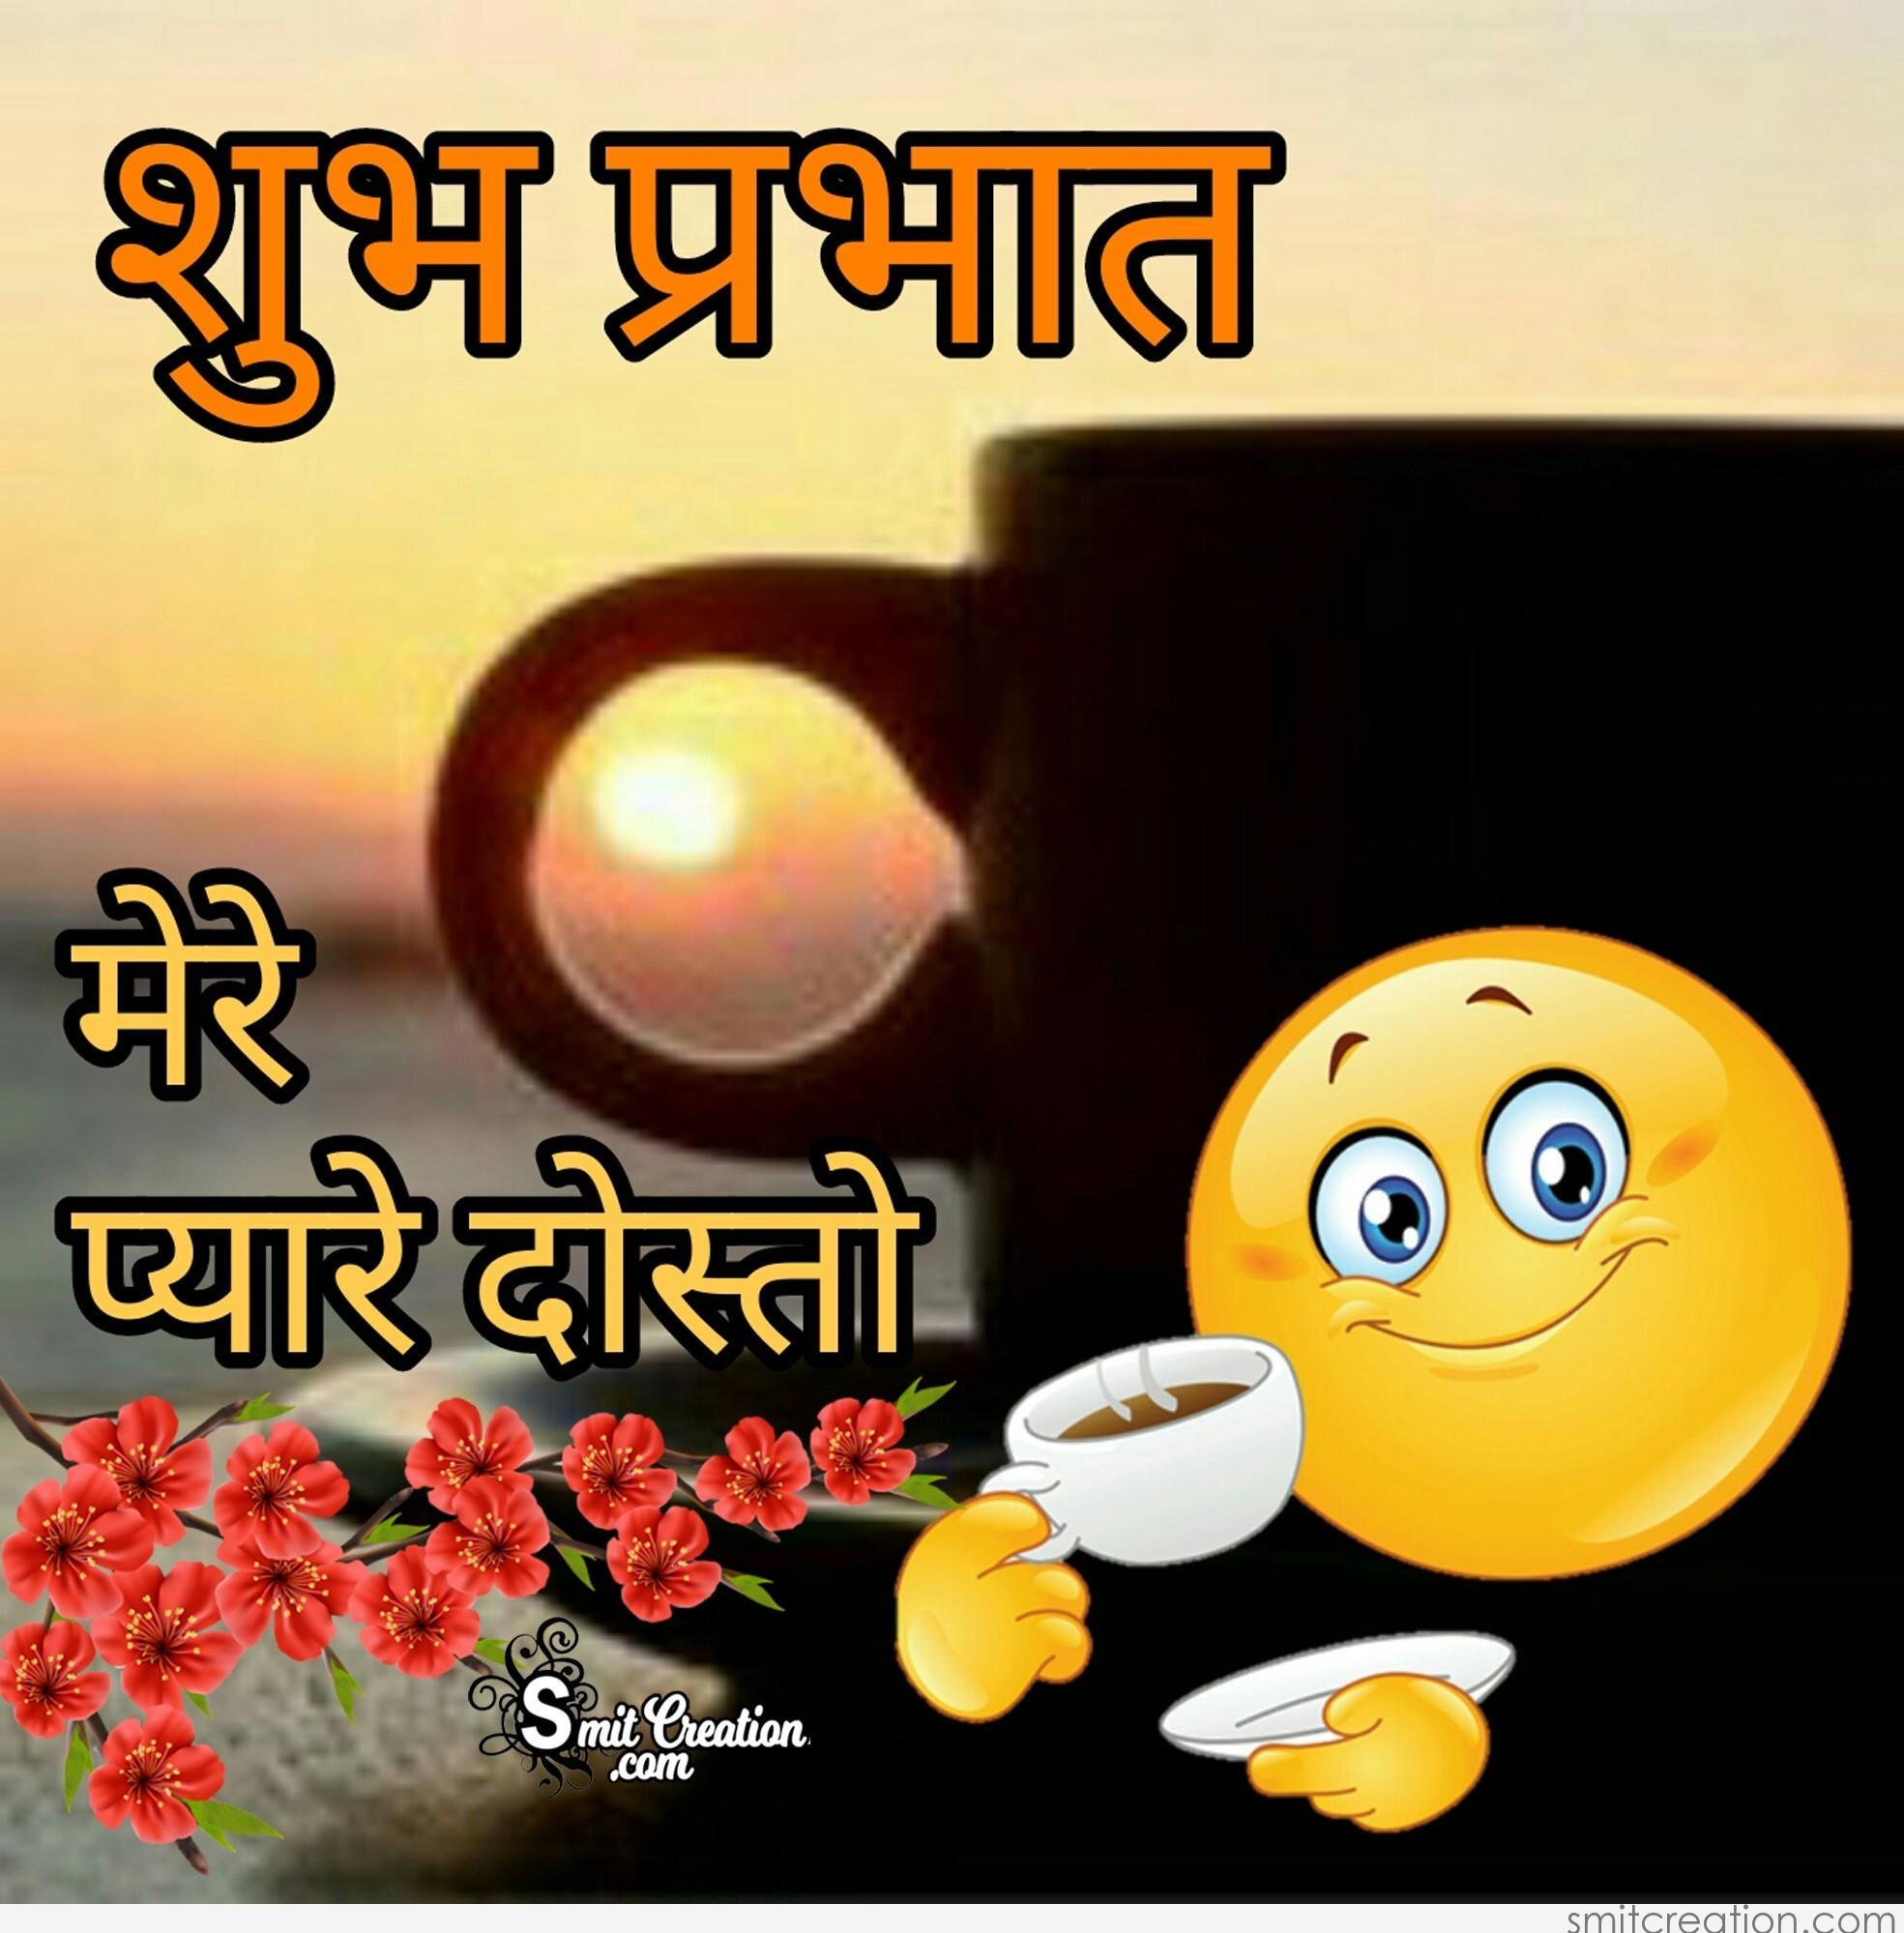 Shubh prabhat hindi pictures and graphics smitcreation download image kristyandbryce Images